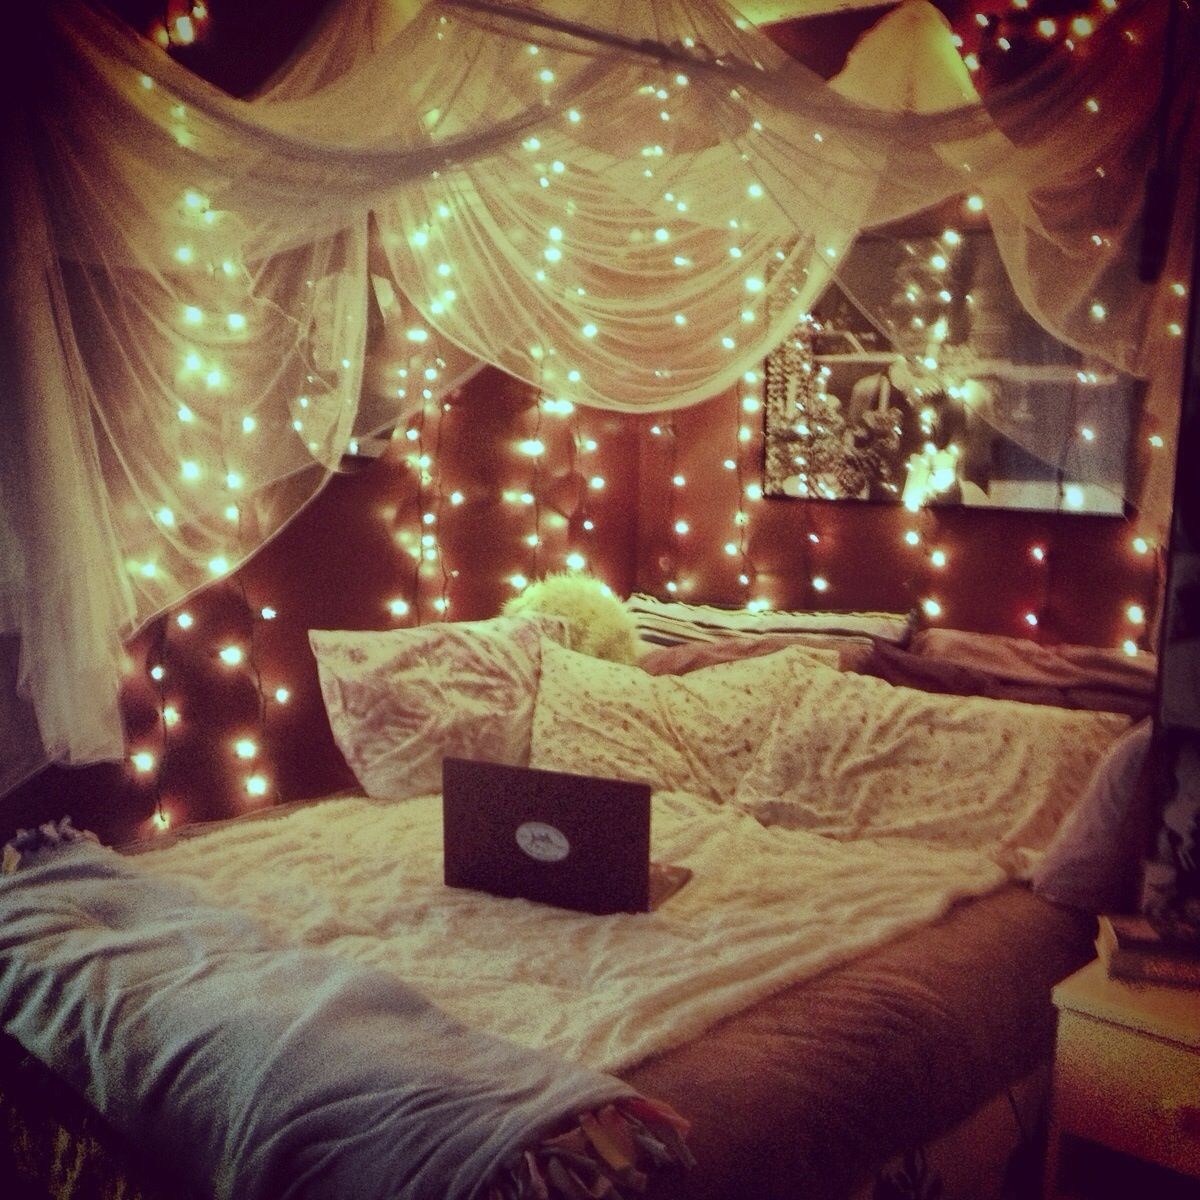 Charmant Fairy Lights Around The Bed :) Great Idea For A Little Girls Room,  Comfy,cozy For Those Bedtime Stories. Little Girls Room? This Would Look  Great In My ...